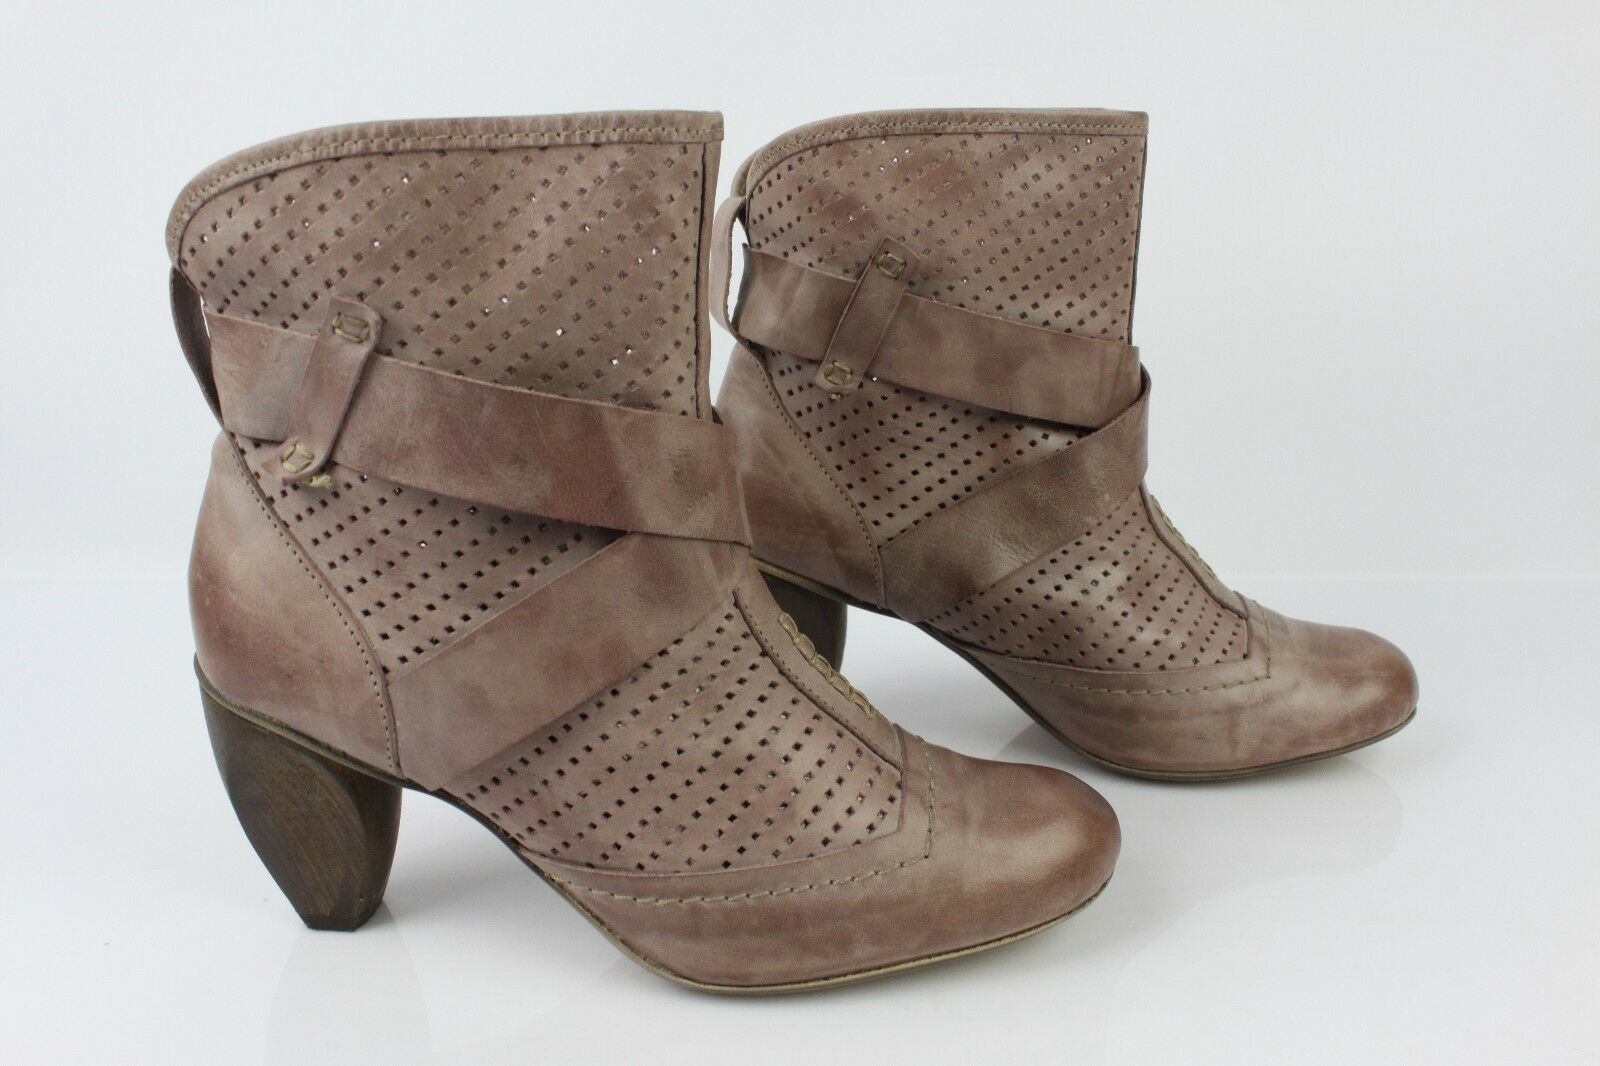 Boots Booties Virus Leather Taupe Clear T 37 Very Good Condition